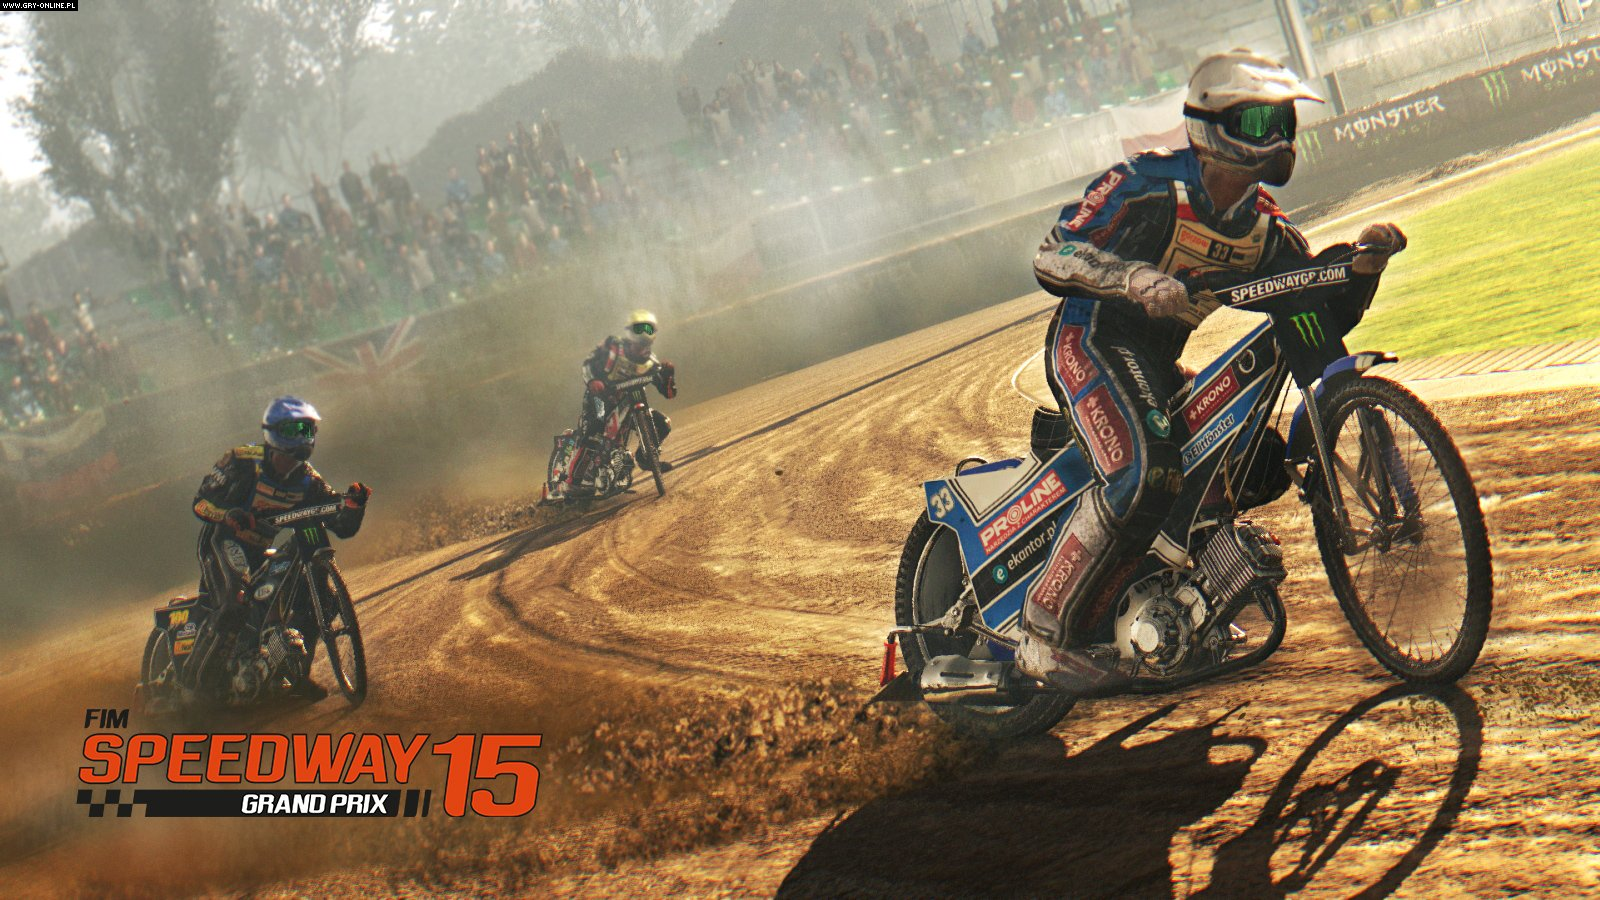 FIM Speedway Grand Prix 15 PC Gry Screen 10/10, Techland, Techland Publishing